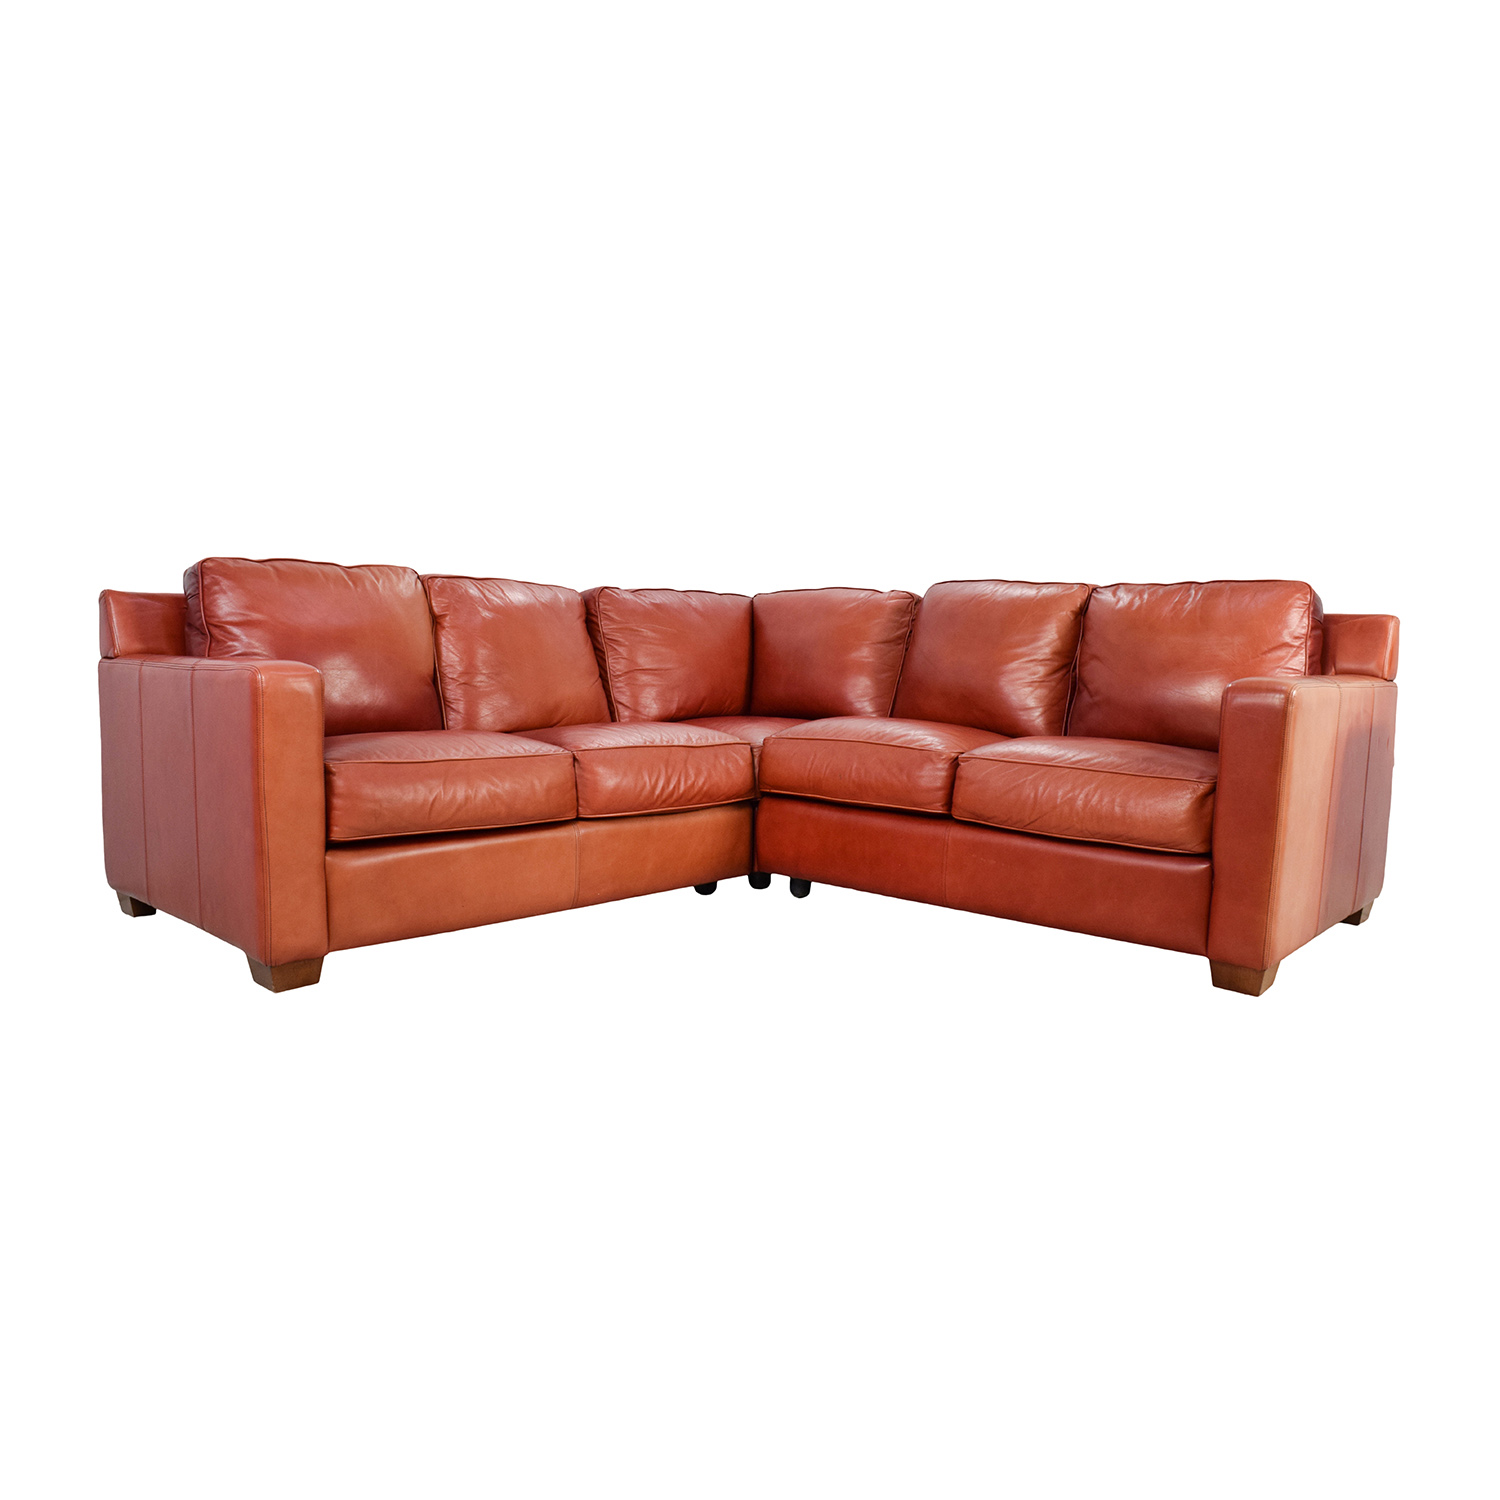 sectional sofas as furniture round sofa leather iron reclining prices thomasville traditional pillow sectionals white incredible well